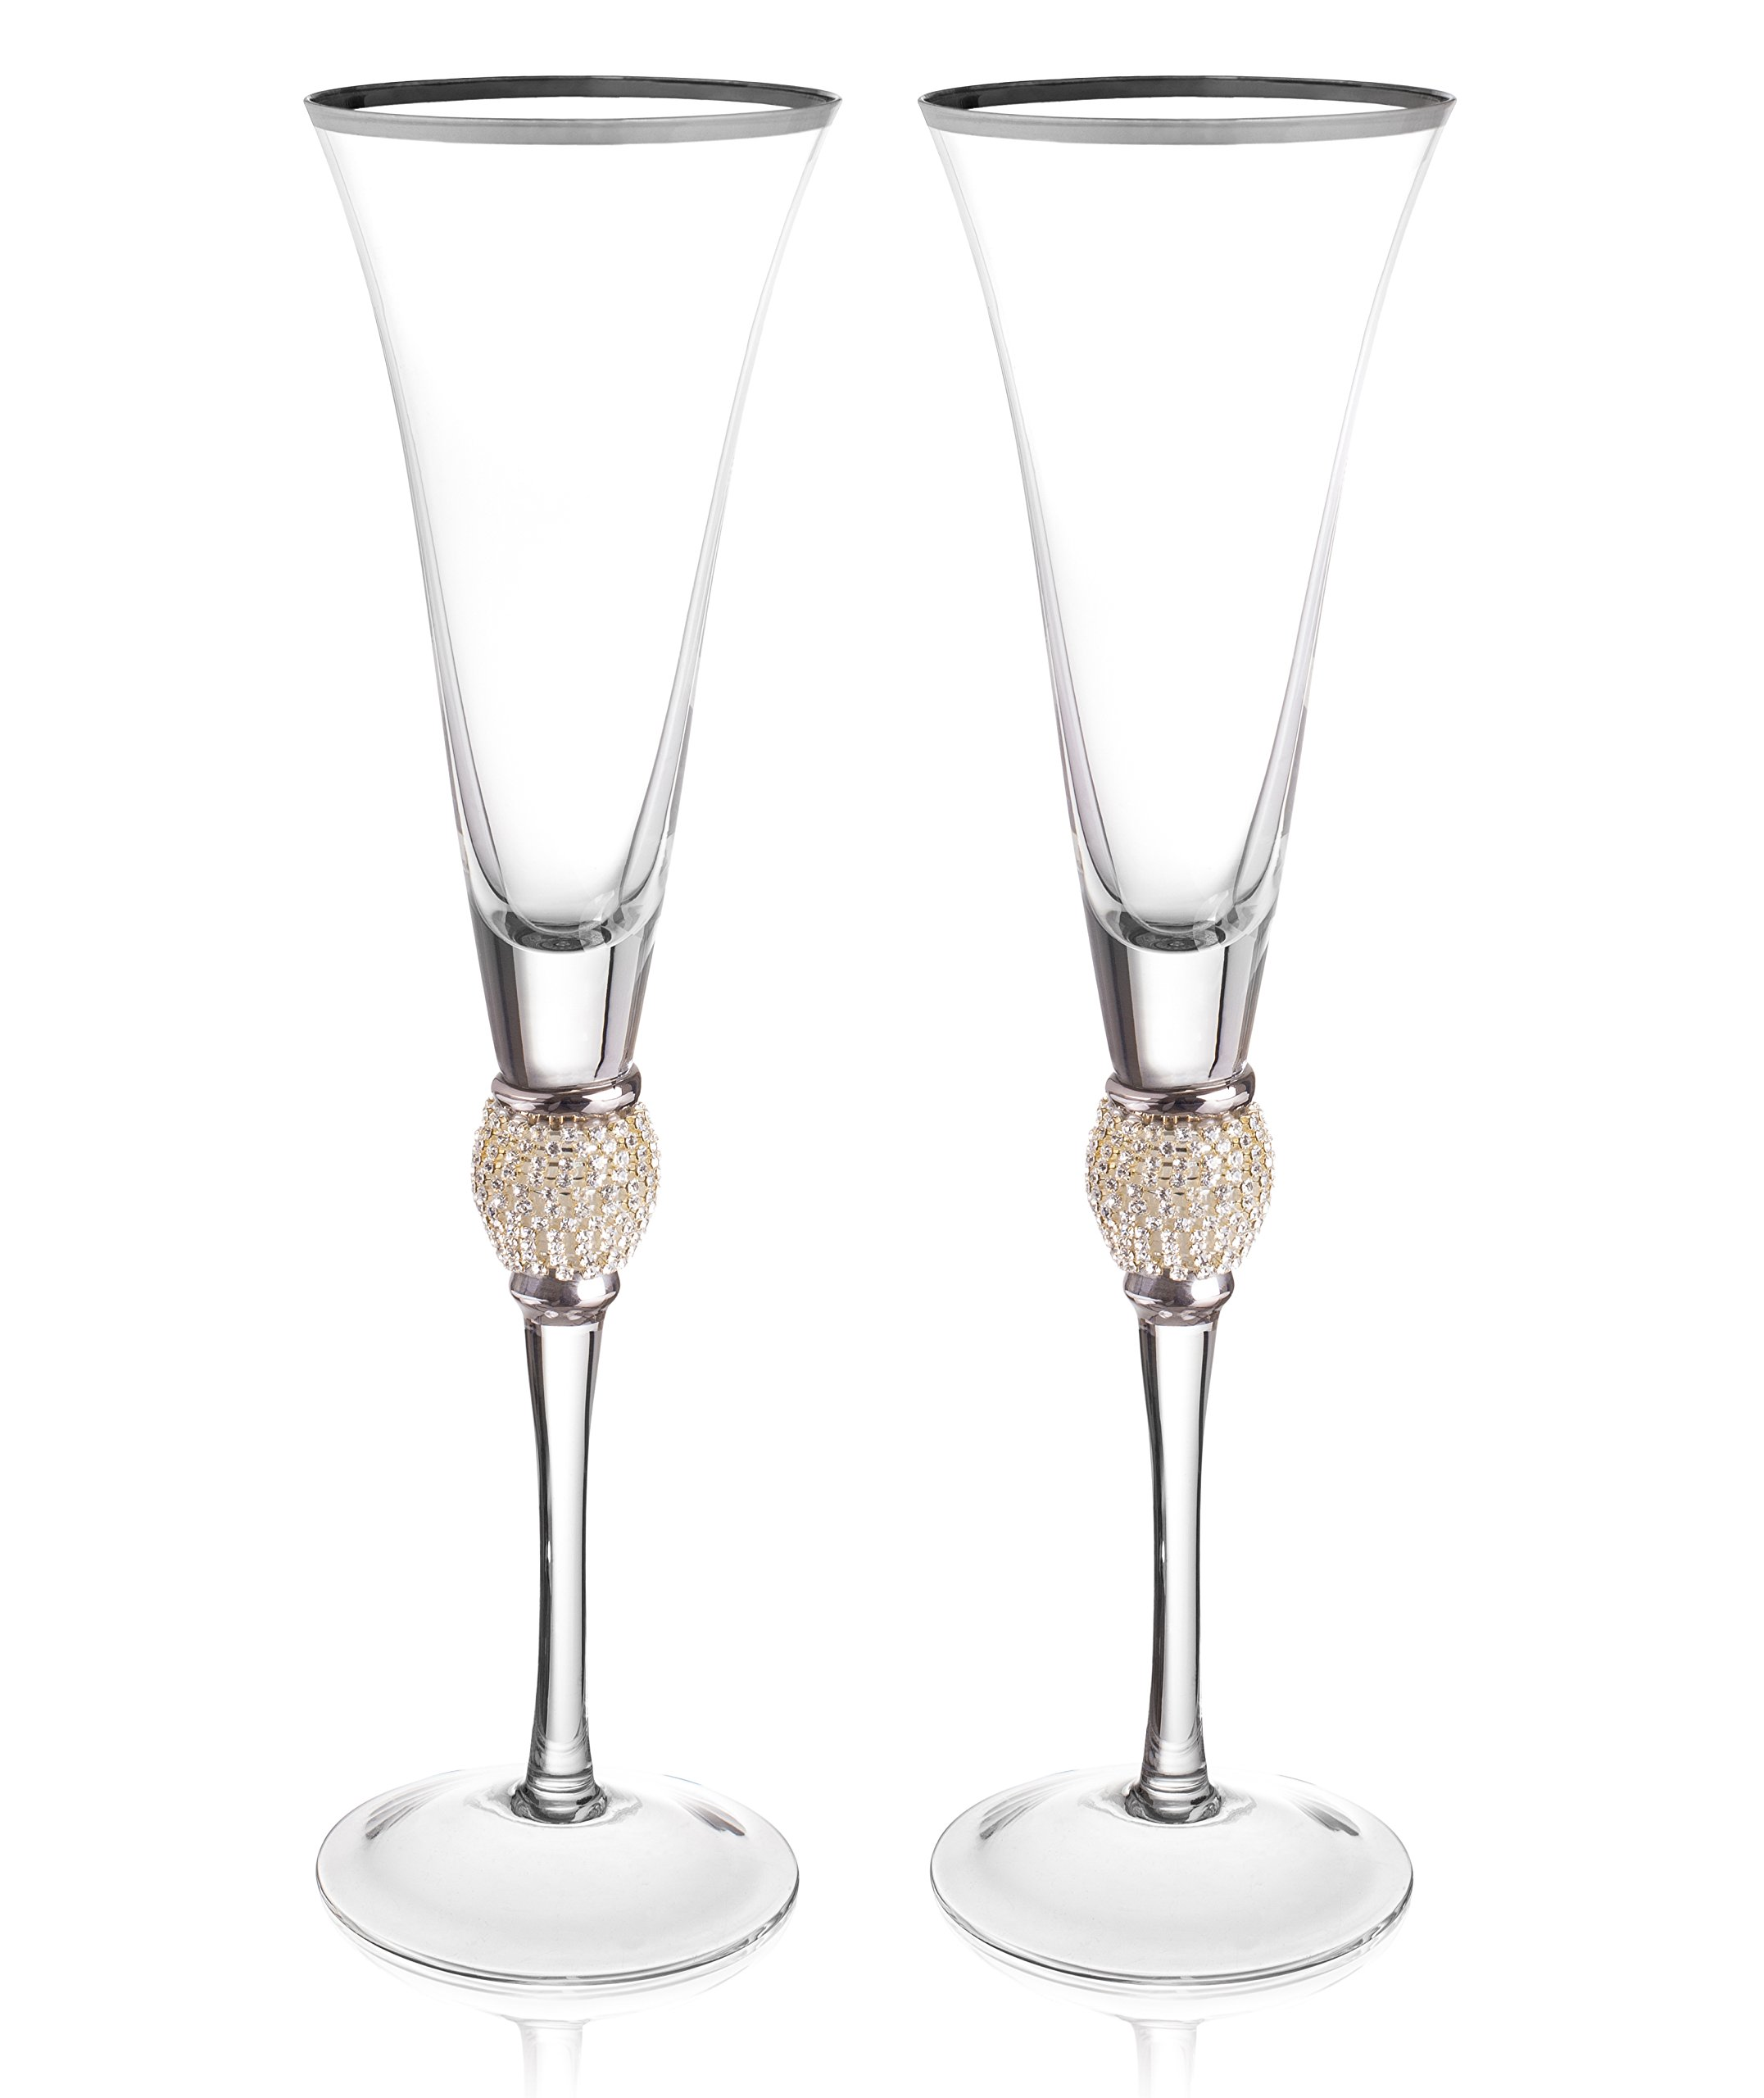 Trinkware Set of 2 Champagne Flutes - Rhinestone''DIAMOND'' Studded Glasses With Silver Rim - Long Stem, 7oz, 11-inches Tall – Elegant Glassware And Stemware